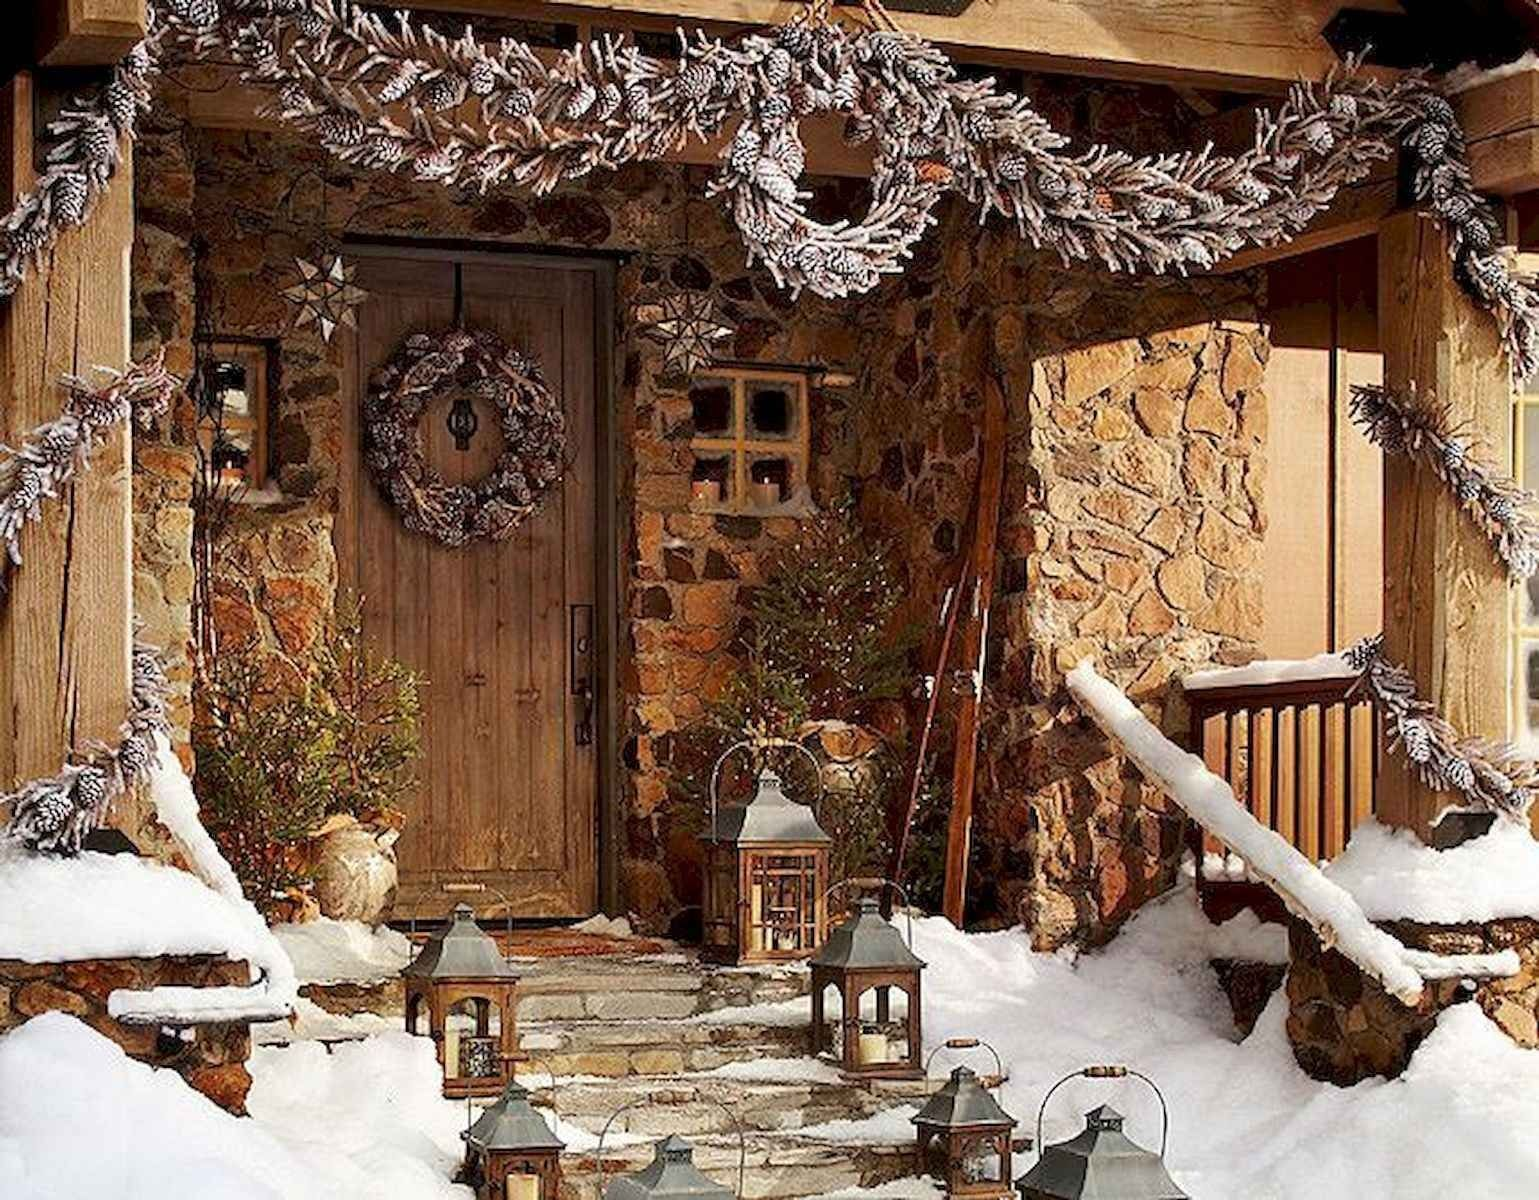 50 Awesome Outdoor Christmas Decor Ideas And Makeover Outdoor Christmas Christmas Front Porch Front Porch Christmas Decor